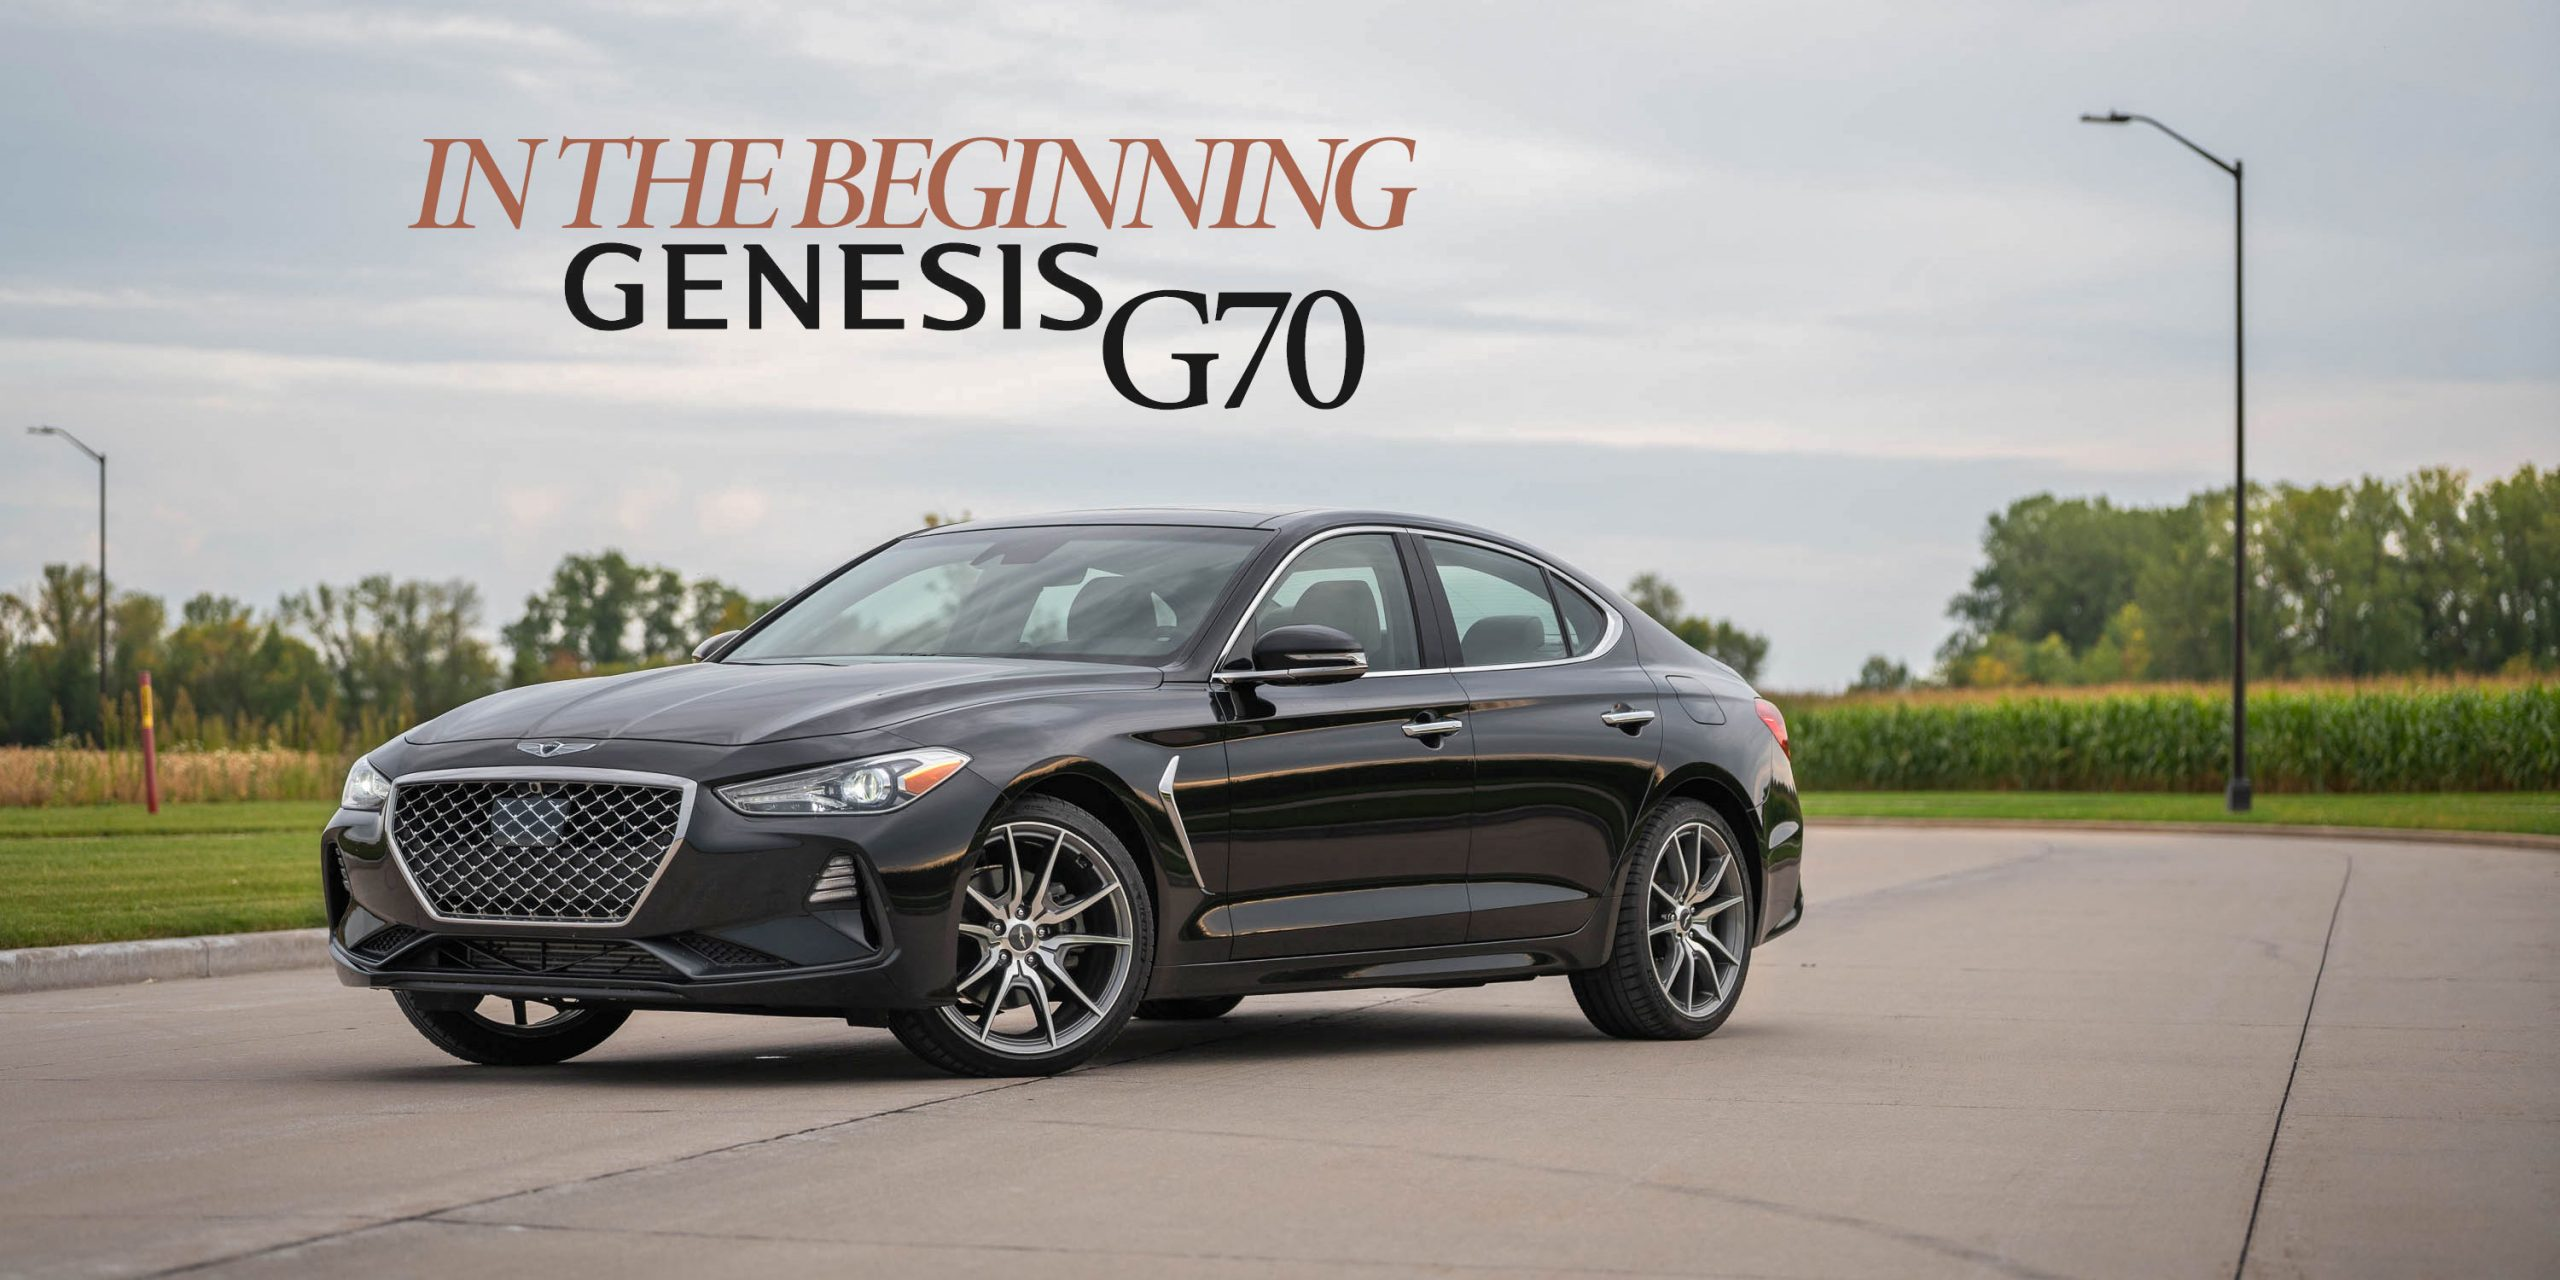 2019 Gensis G70 RWD 2.0T Review